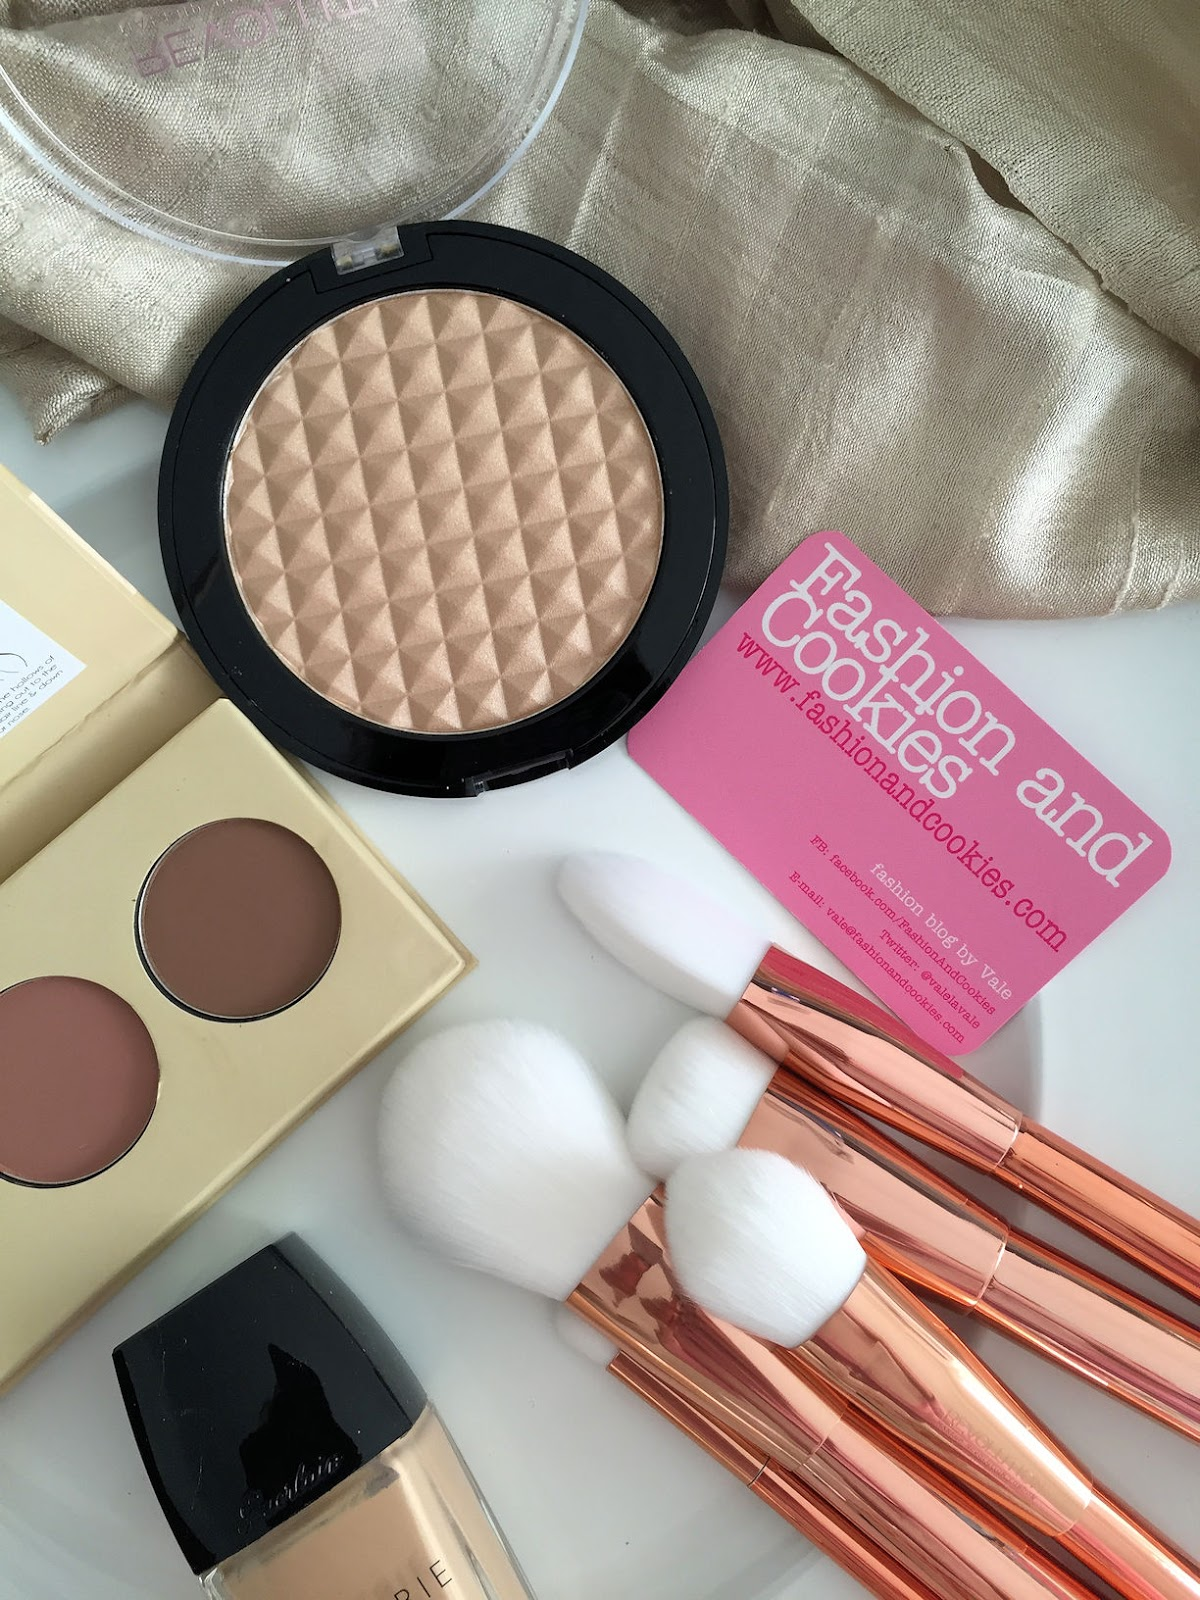 Pro Illuminate Highlighter and Makeup Revolution Ultra Metals Revolution makeup brushes review on Fashion and Cookies beauty blog, beauty blogger